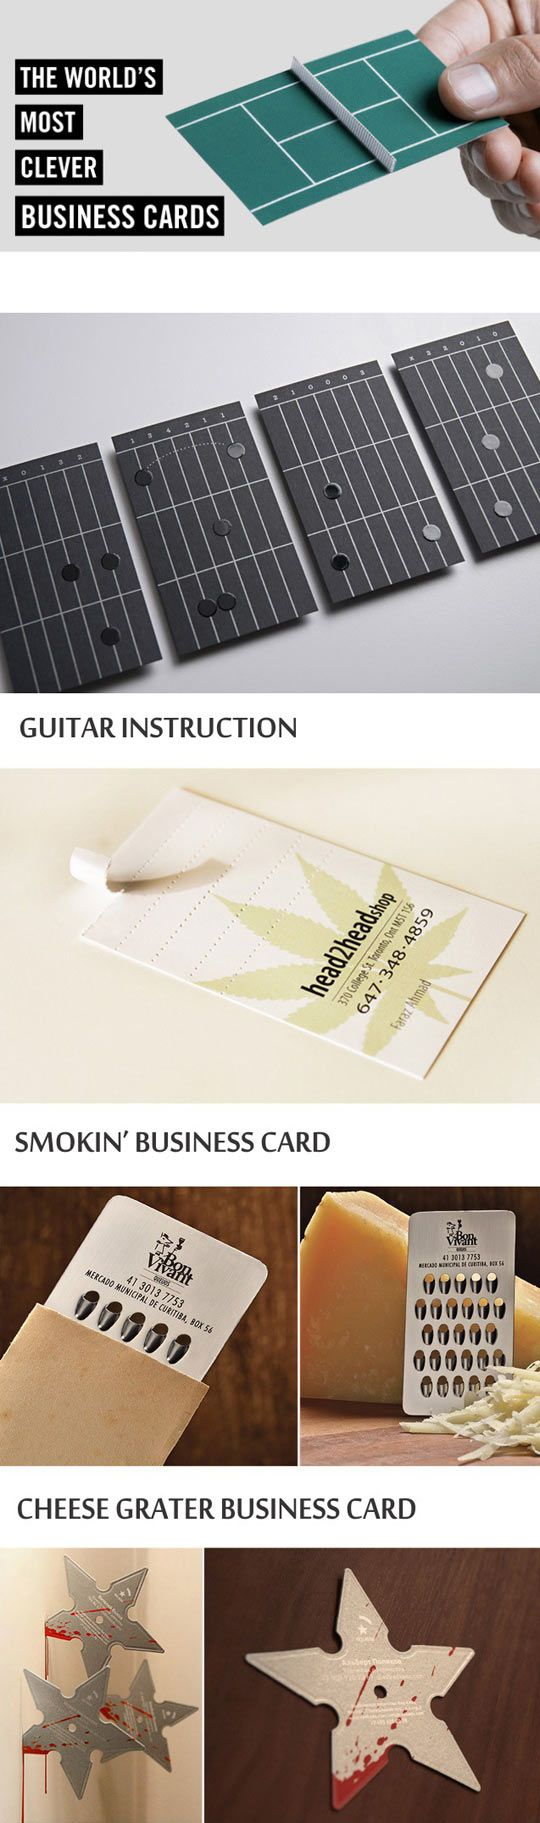 The world's most clever business cards…